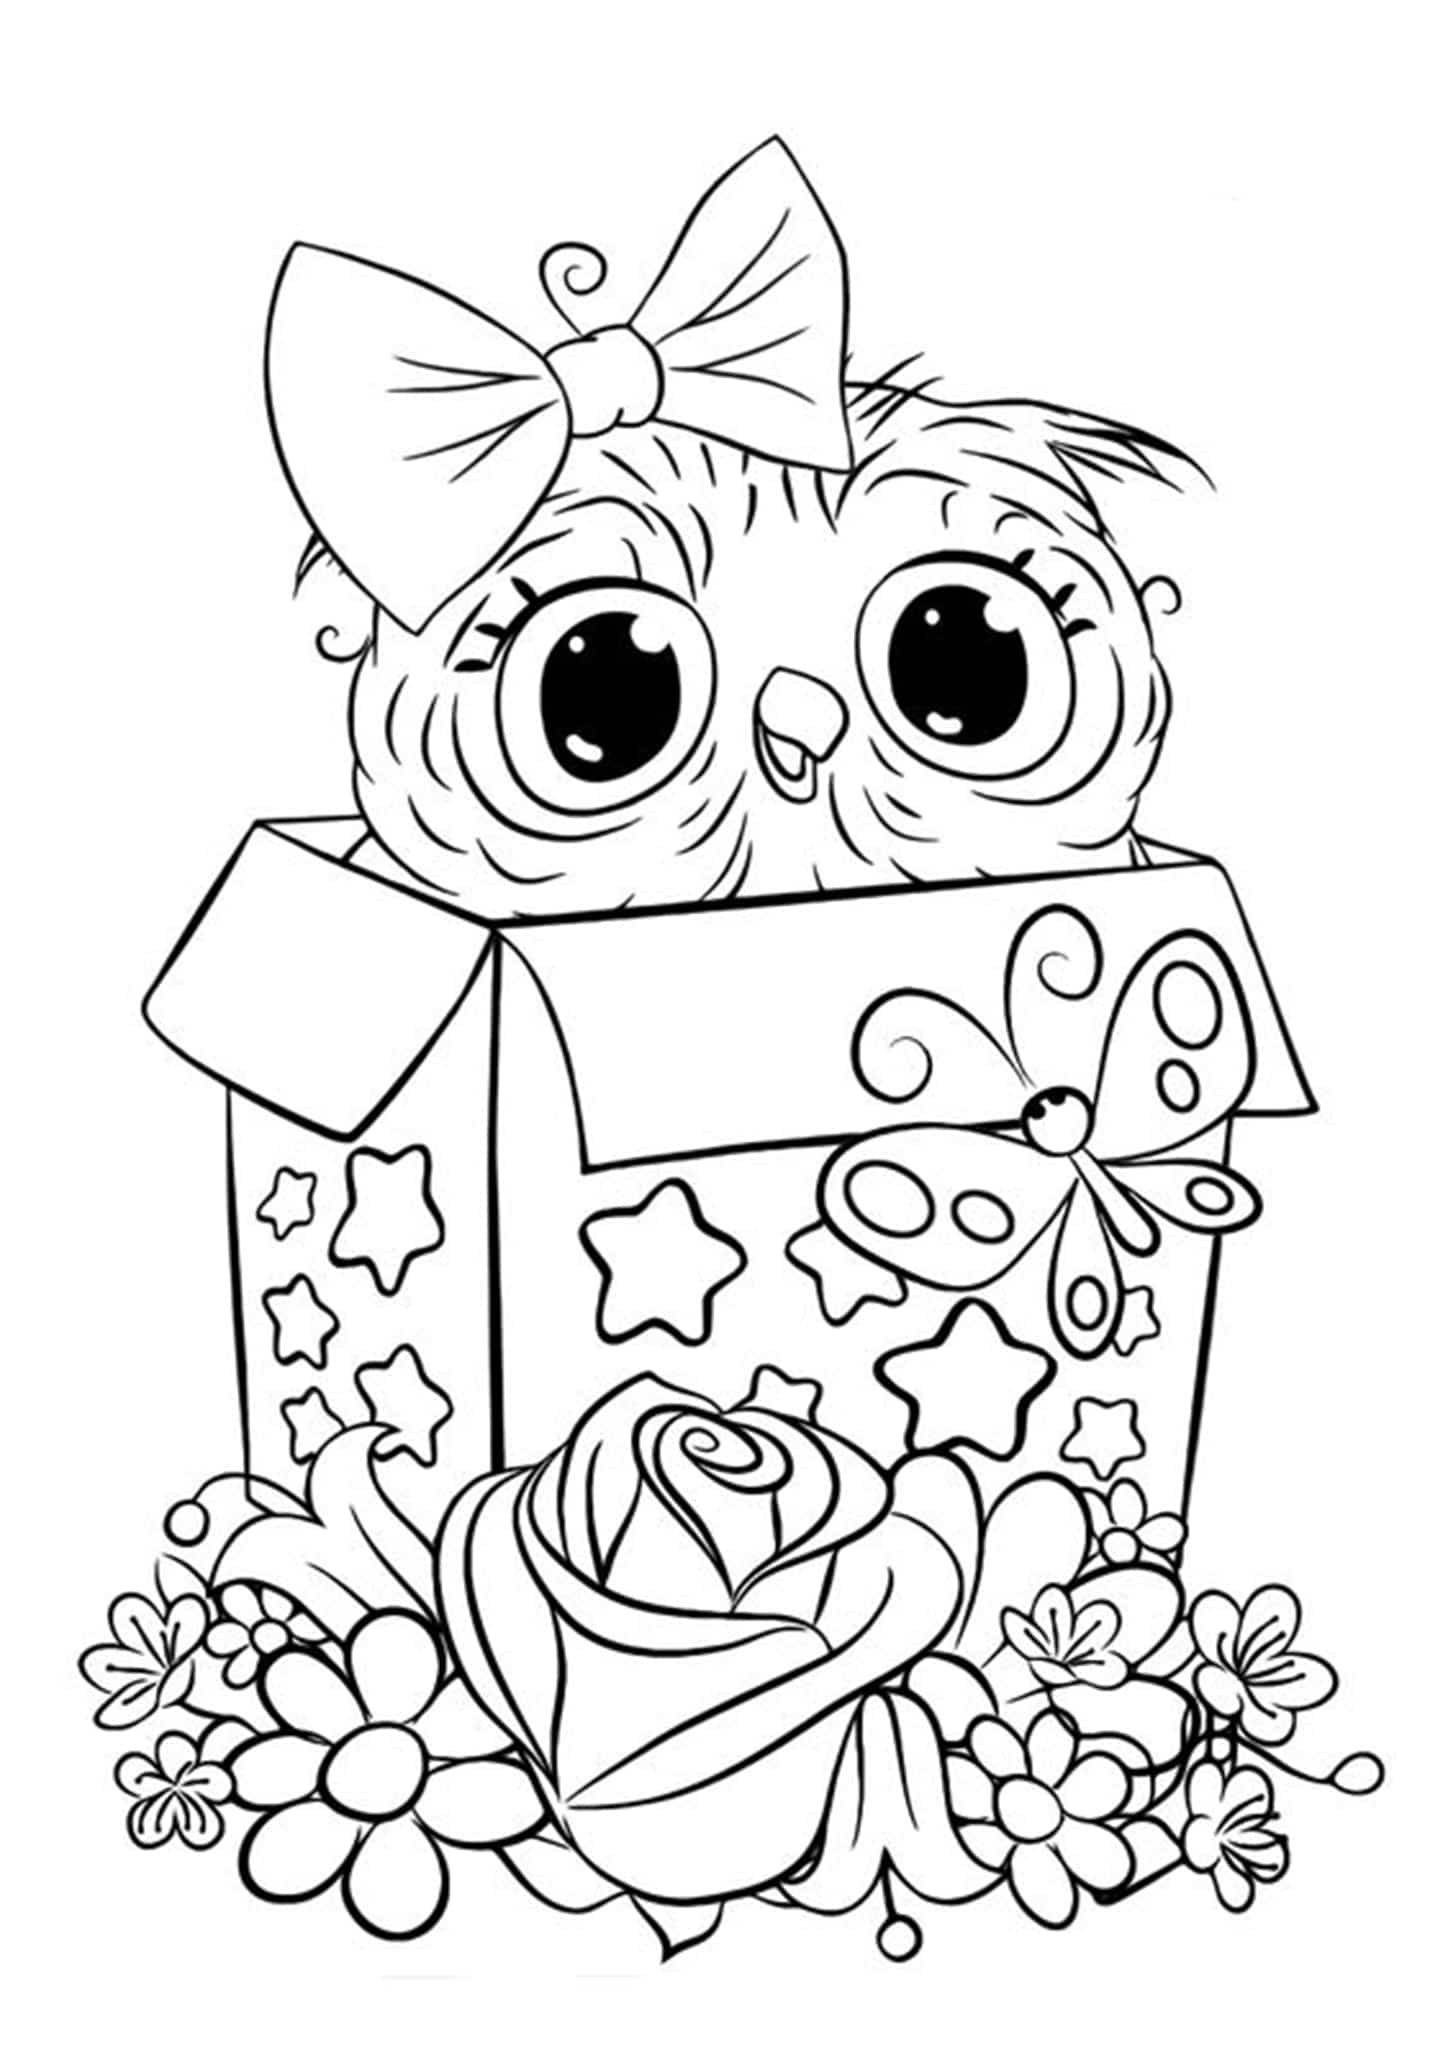 fun coloring pages to print zebra coloring pages free printable kids coloring pages fun coloring pages to print